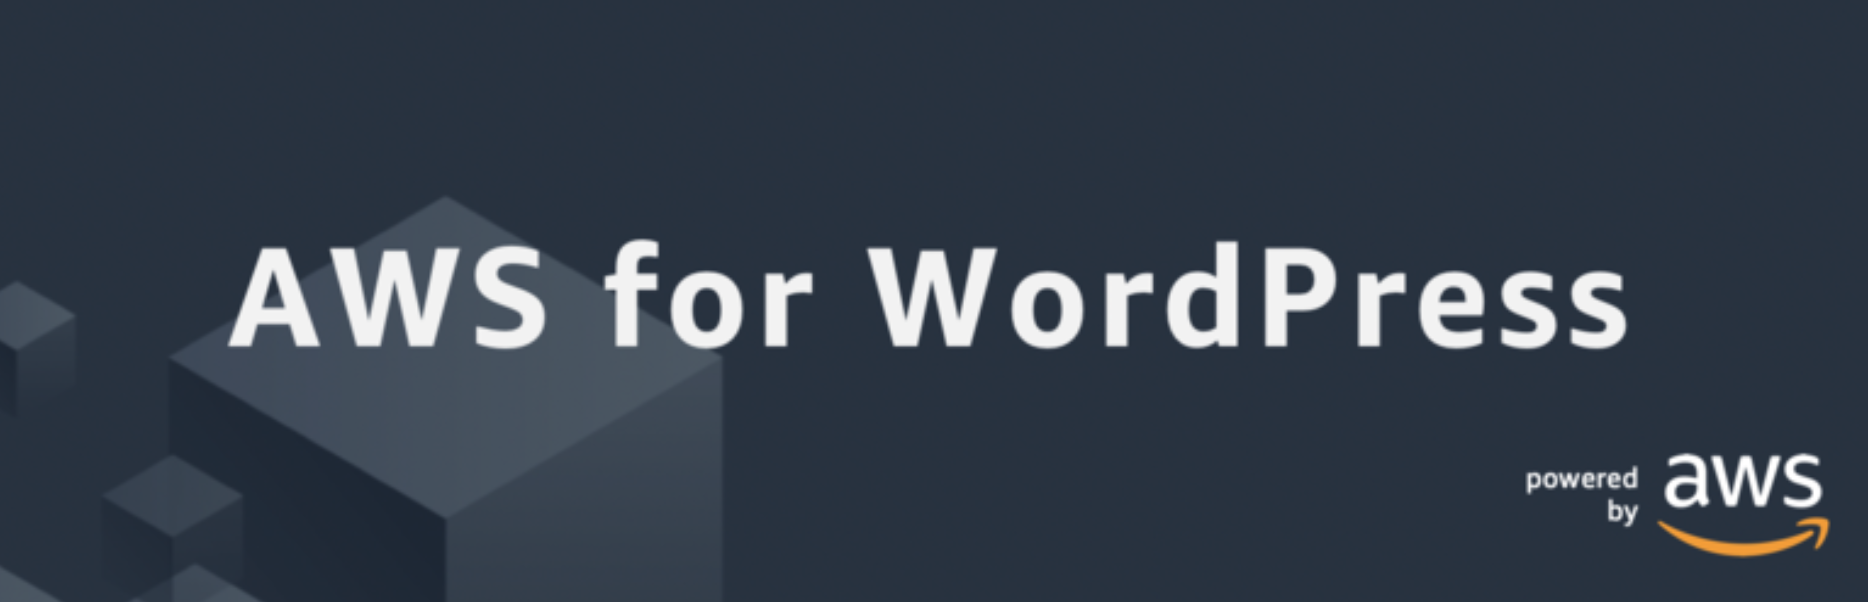 AWS for WordPress